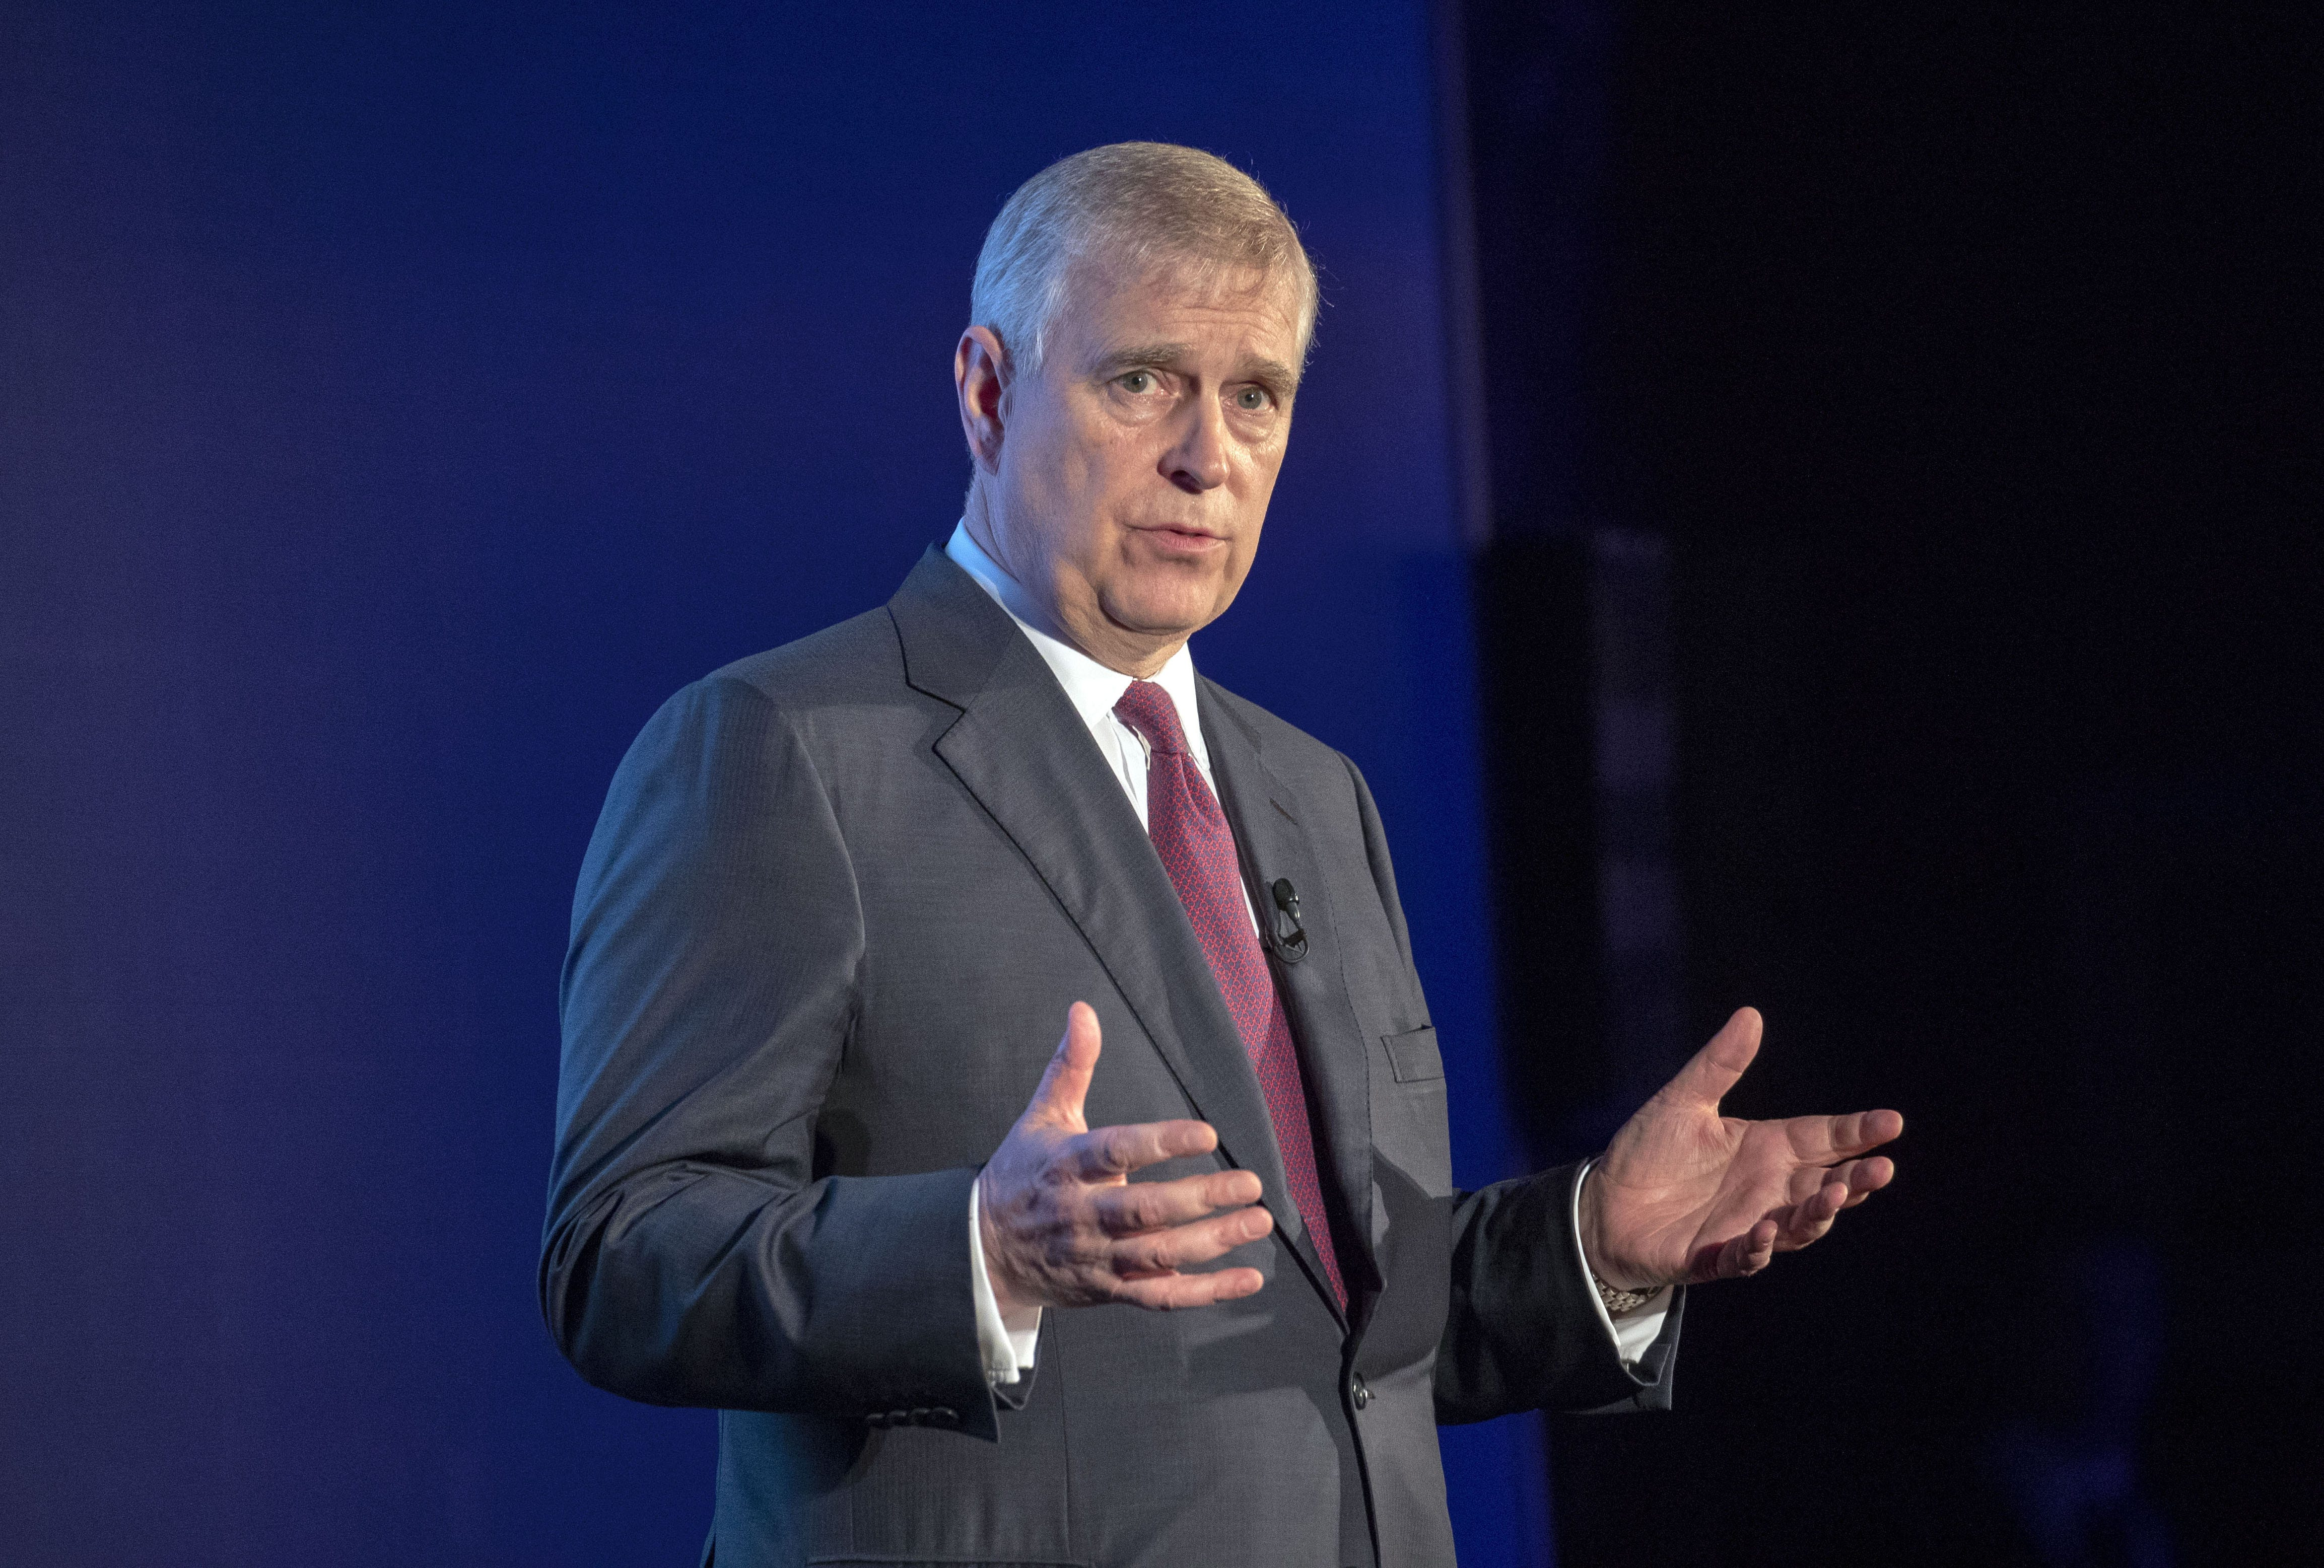 Jeffrey Epstein Prince Andrew Appalled By Alleged Sex Crimes